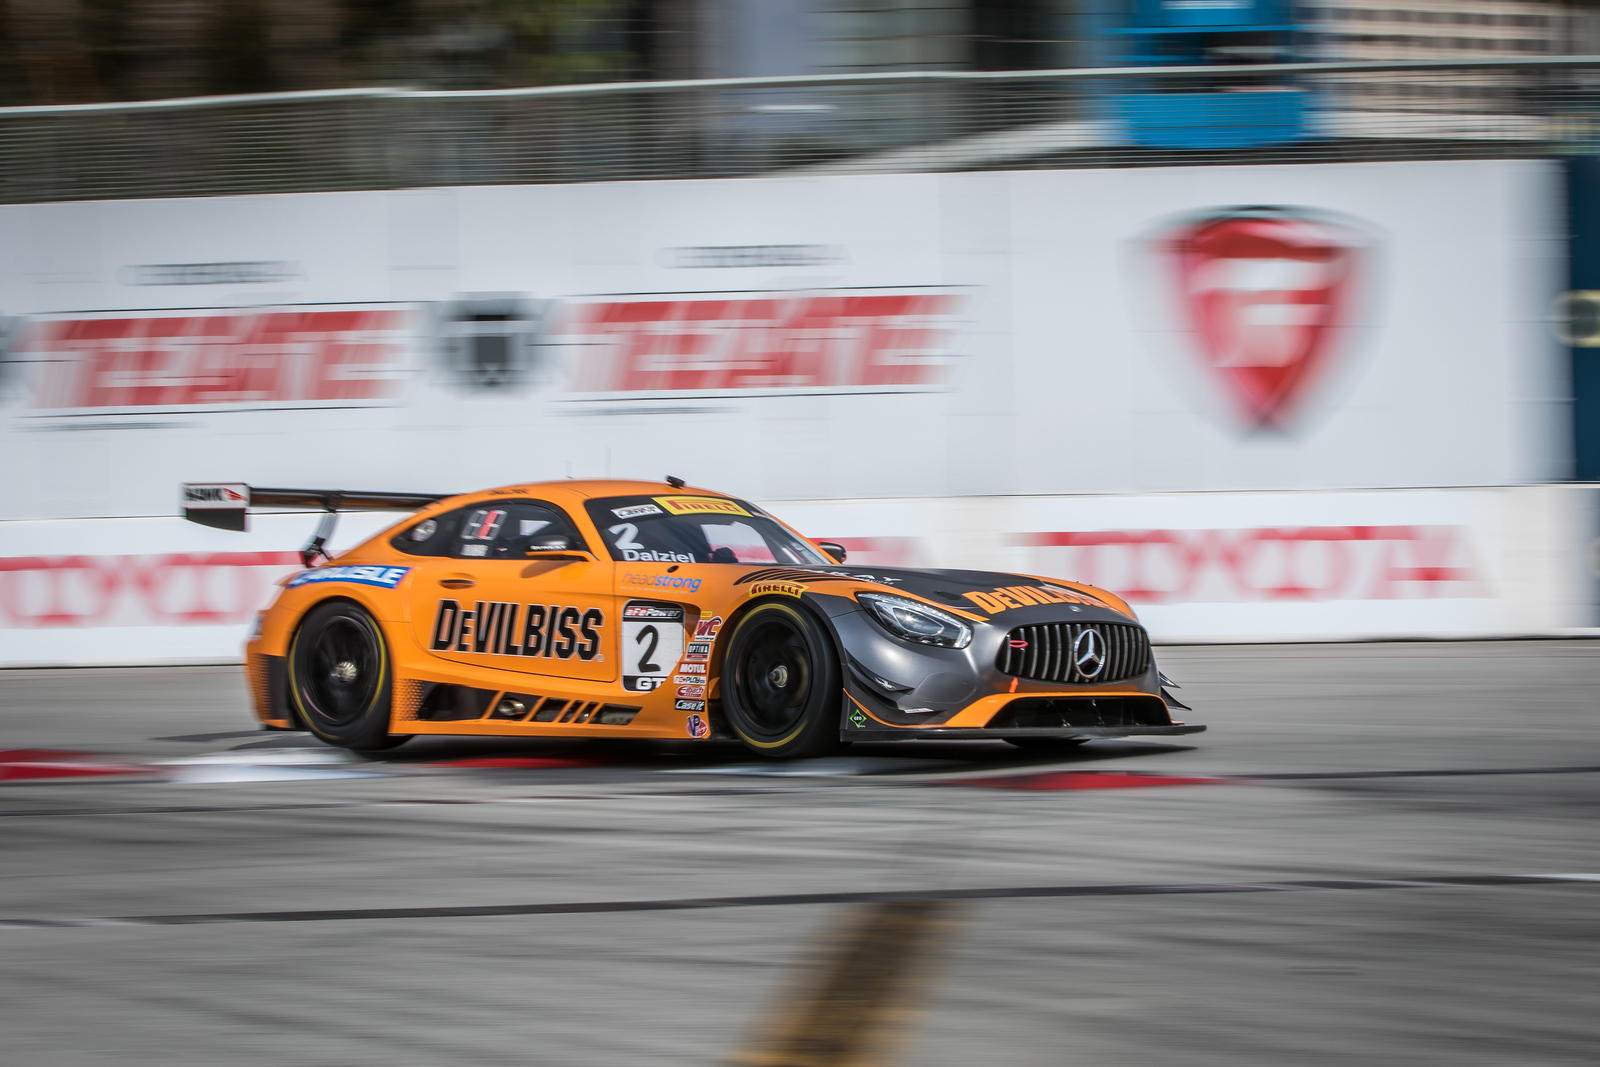 IMSA Weathertech Series AMG GT3 driven by Ryan Dalziel